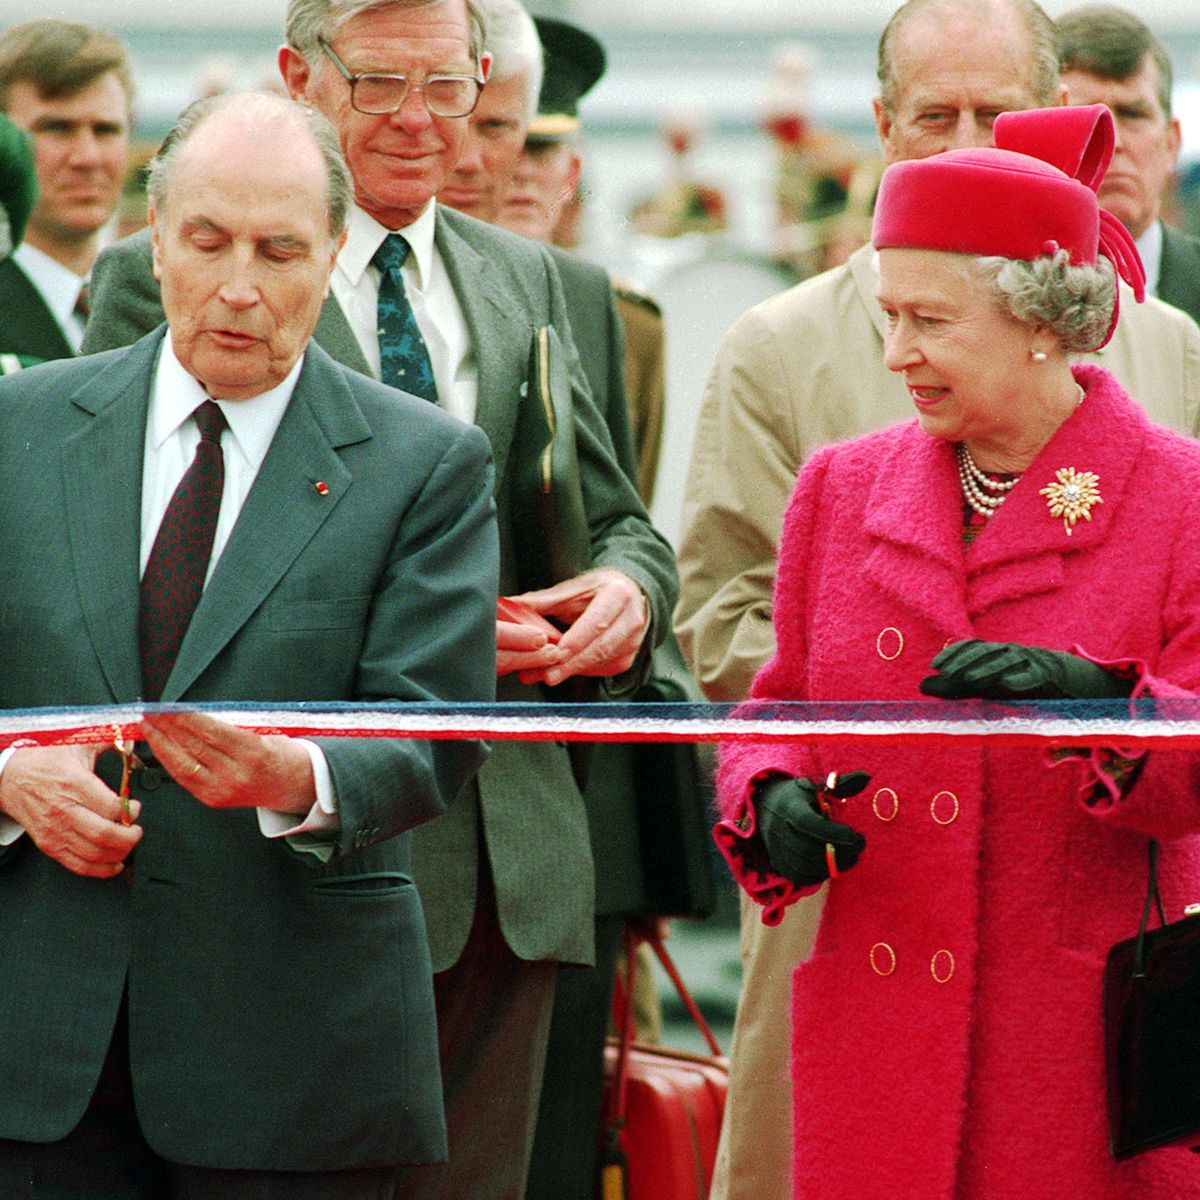 French President Francois Mitterand and the Queen preparing to cut the ribbon at the new terminal for the Channel Tunnel at Coquelles, France, in 1994